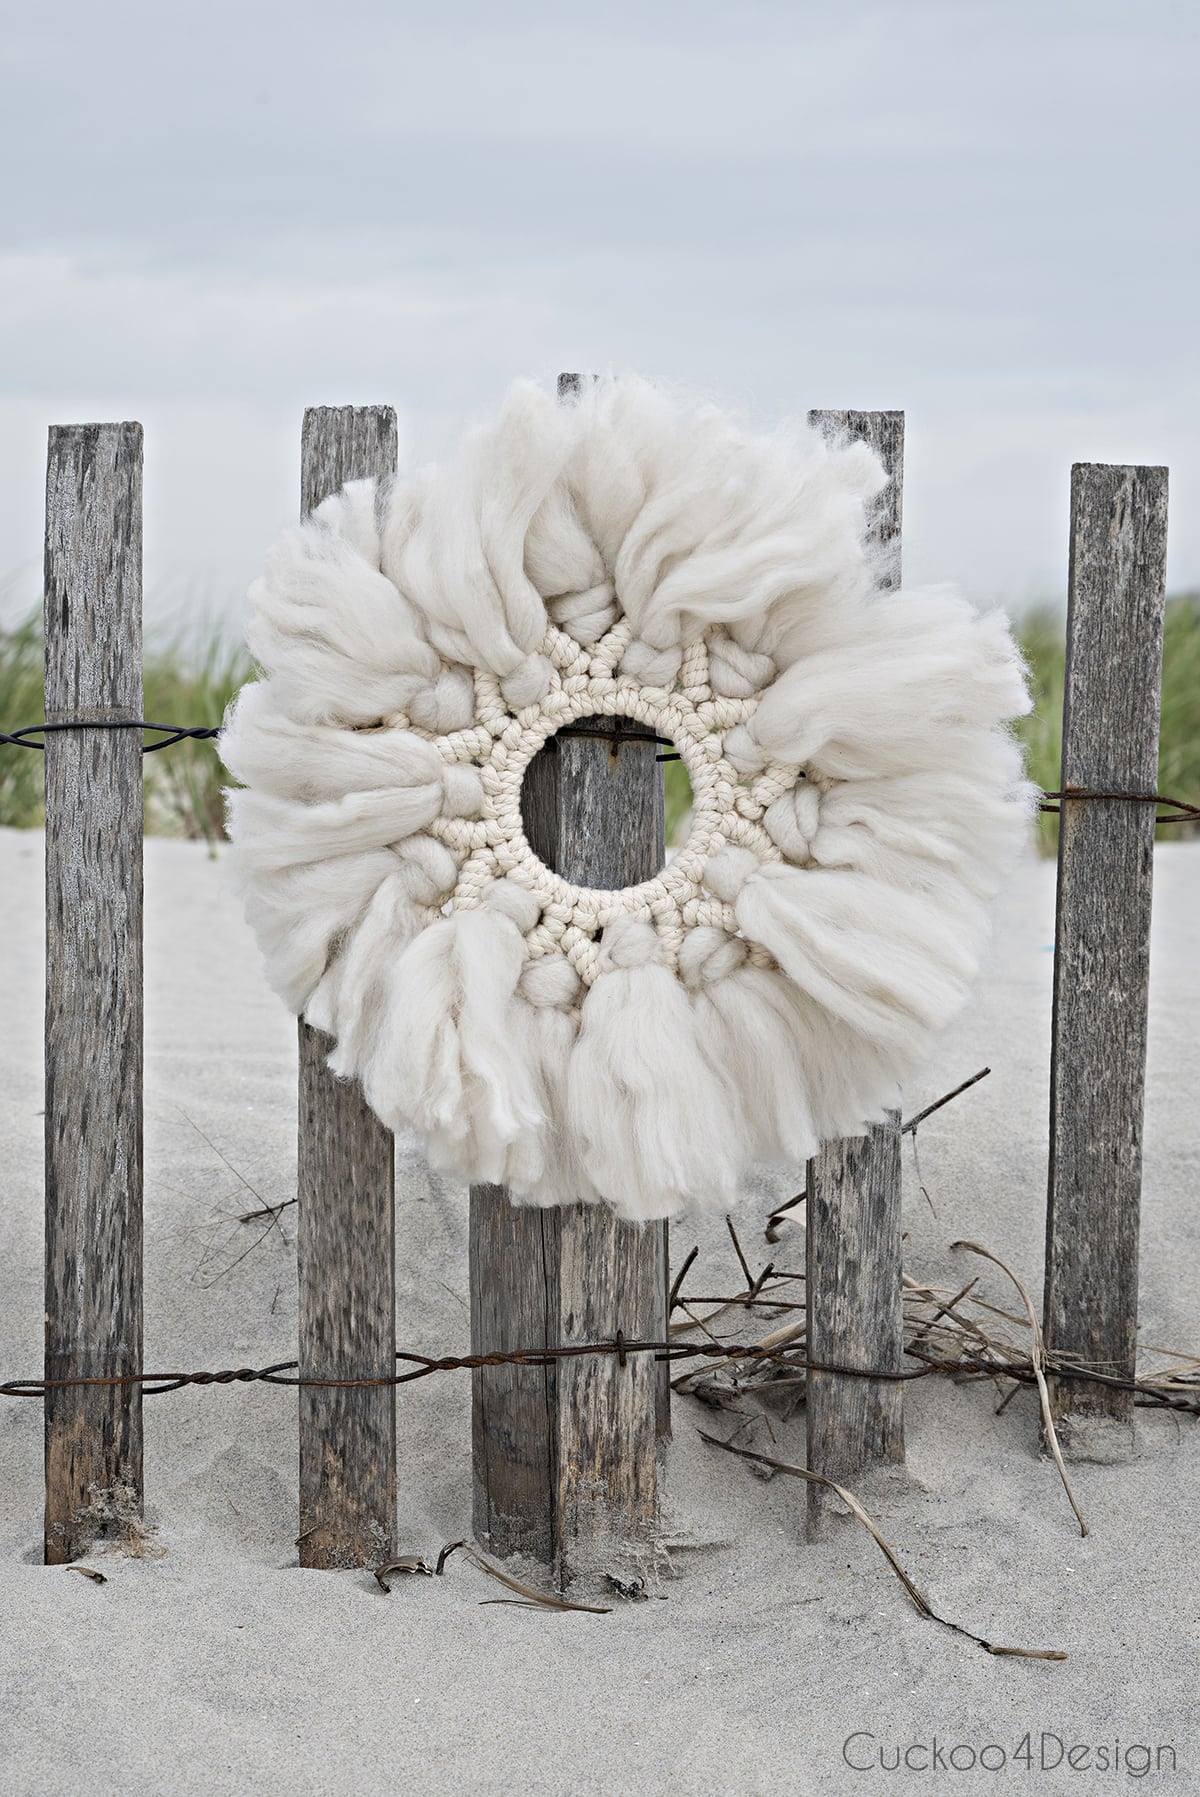 wool and yarn macrame wreath hanging on beach dunes fencing